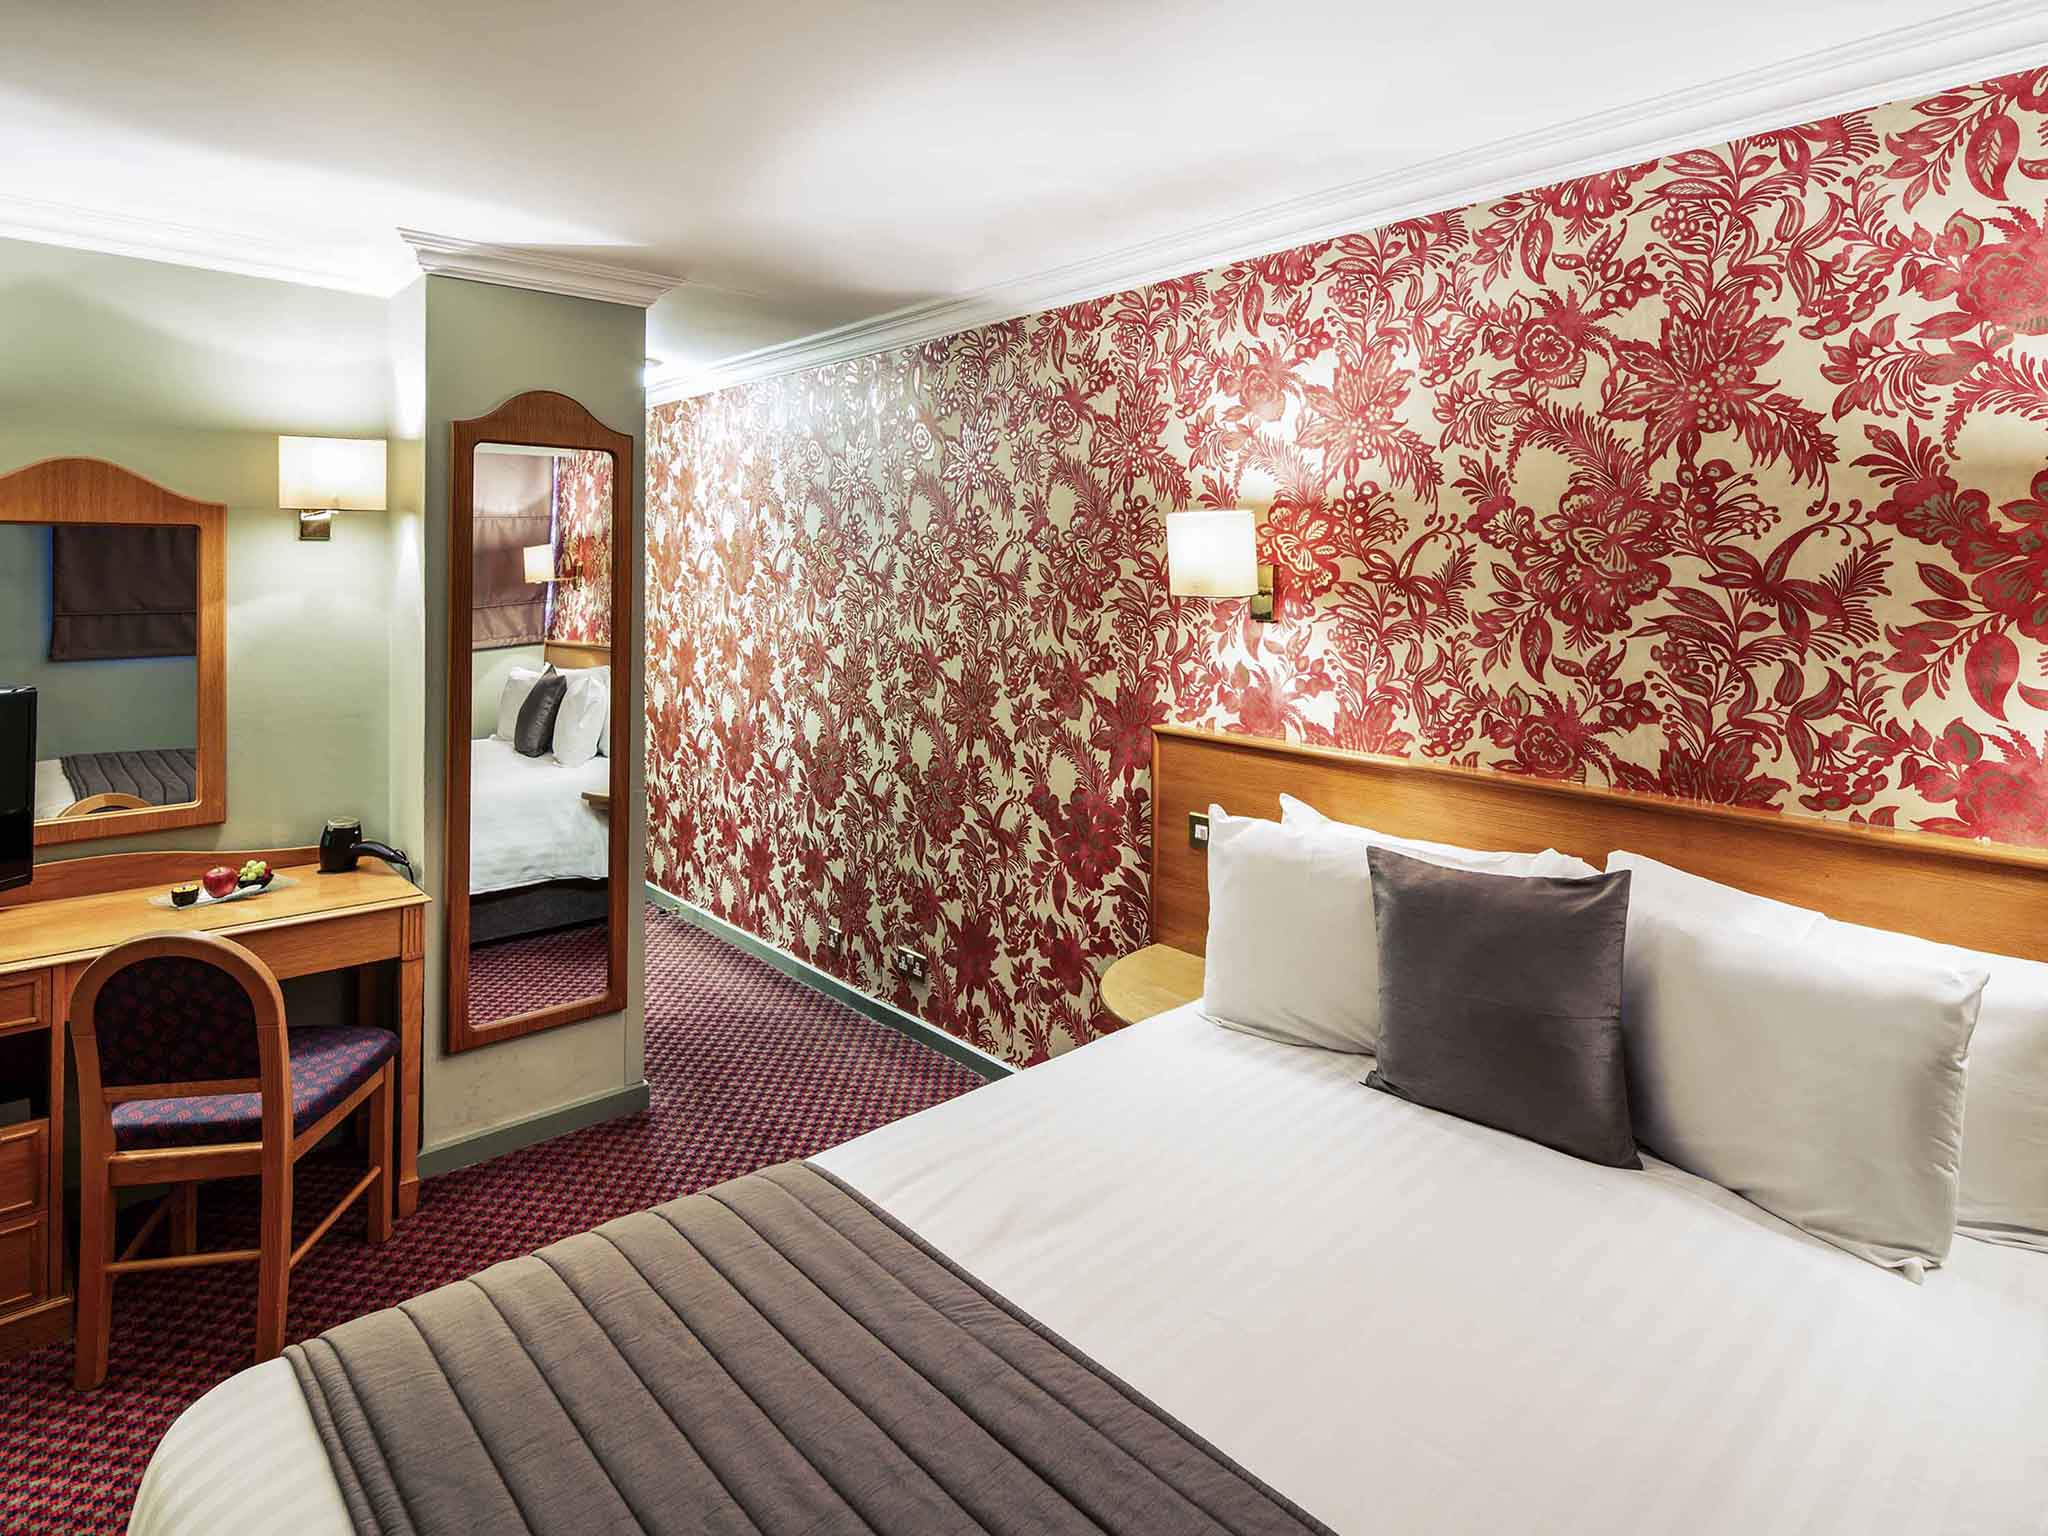 Liverpool Wallpaper For Bedroom Mercure Chester Abbots Well Quality Hotel In Chester